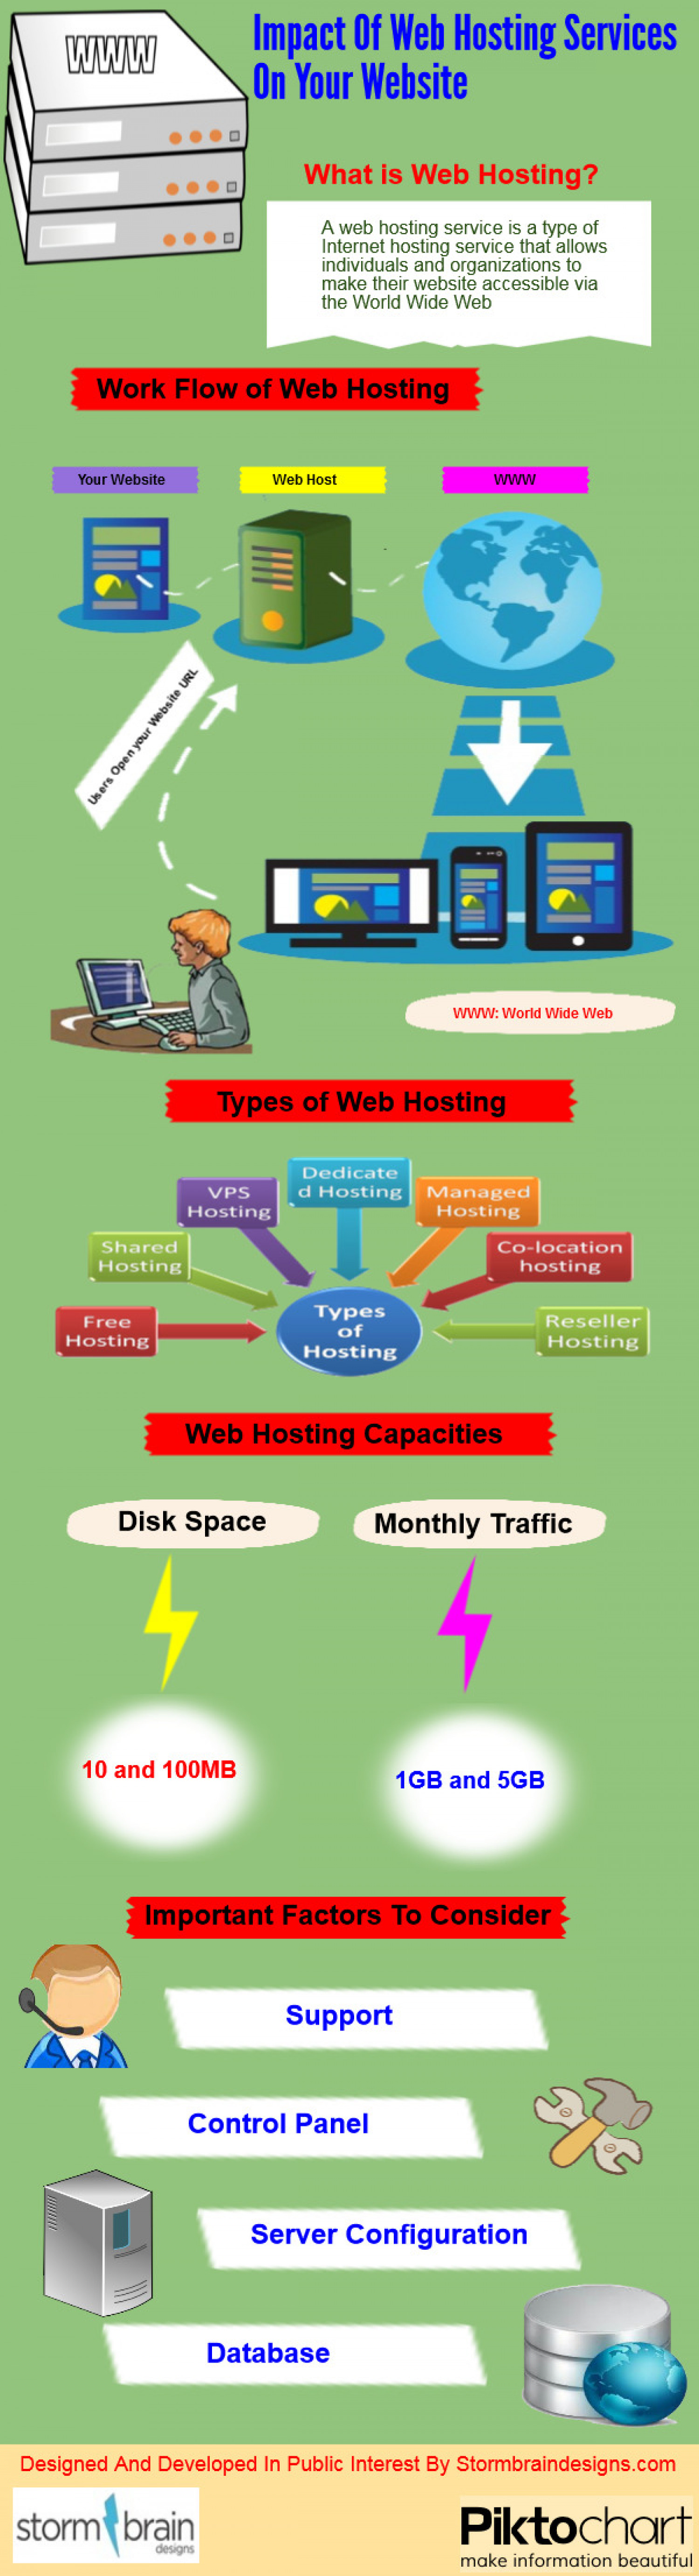 Impact of Web Hosting Services On Your Website Infographic